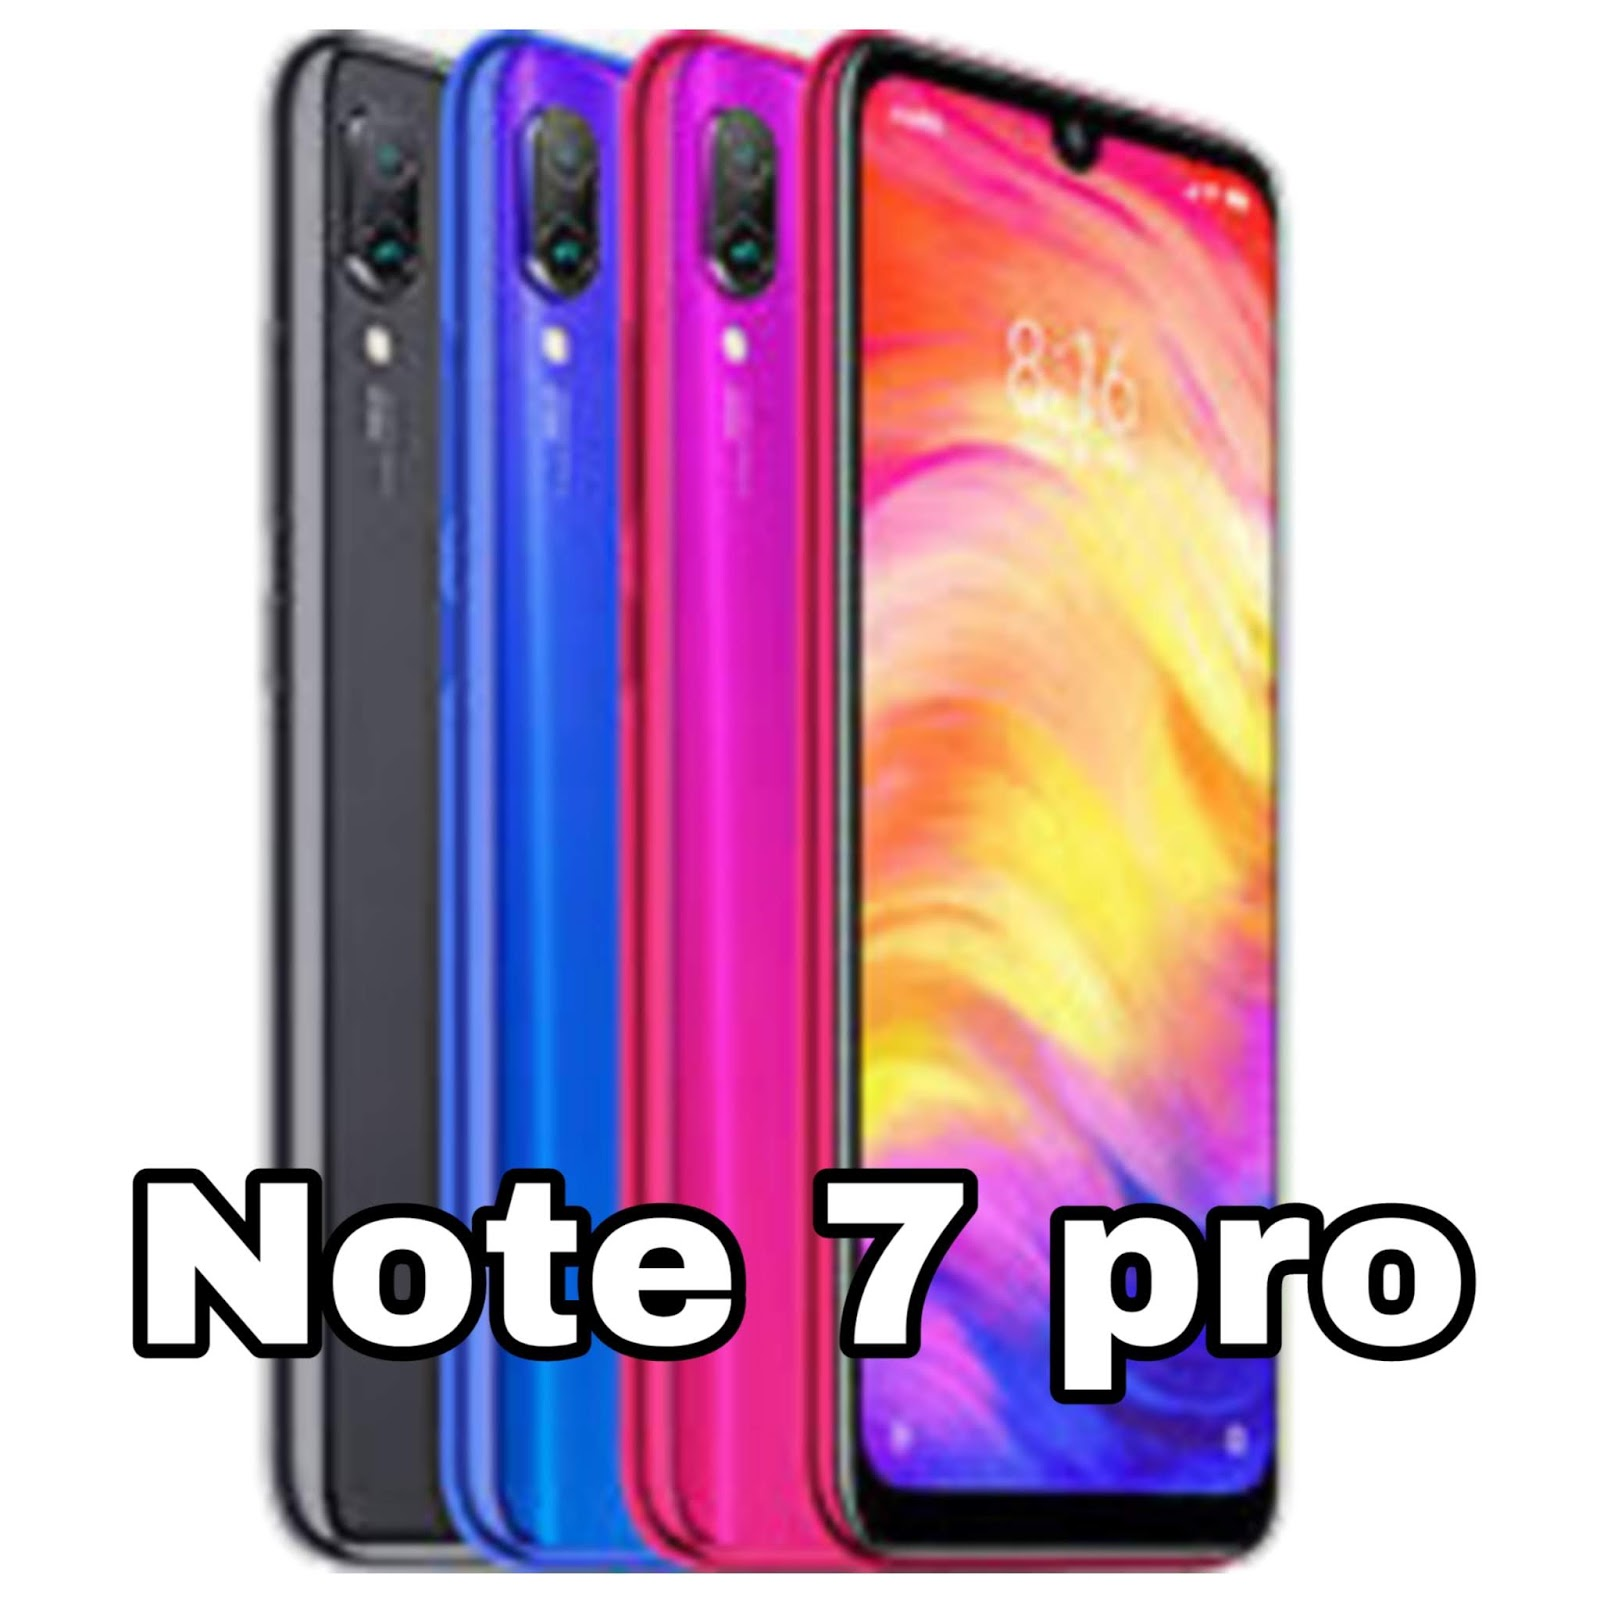 Redmi Note 7 Pro Performance, Camera and Battery Life review